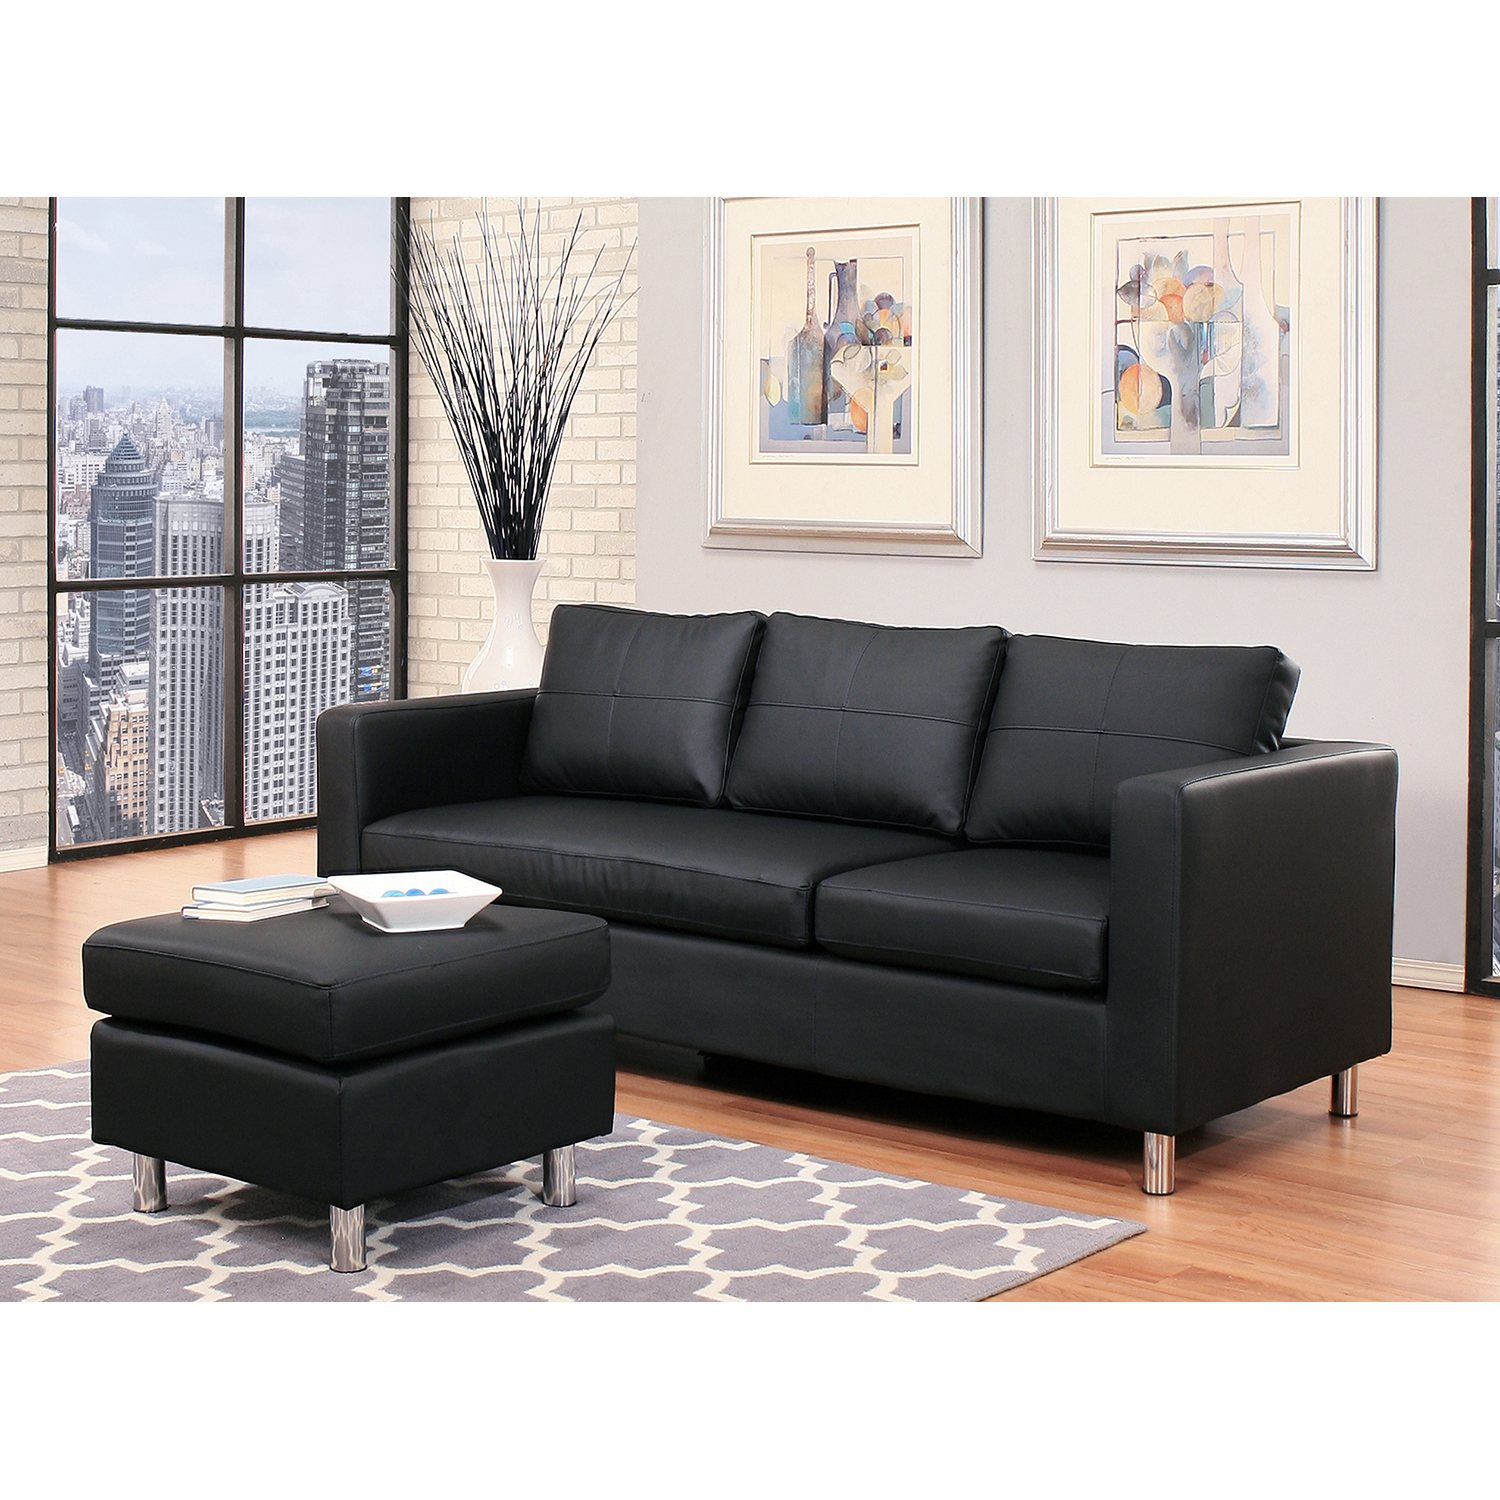 klaussner living room lincoln chaise lounge 270r chase klaussner